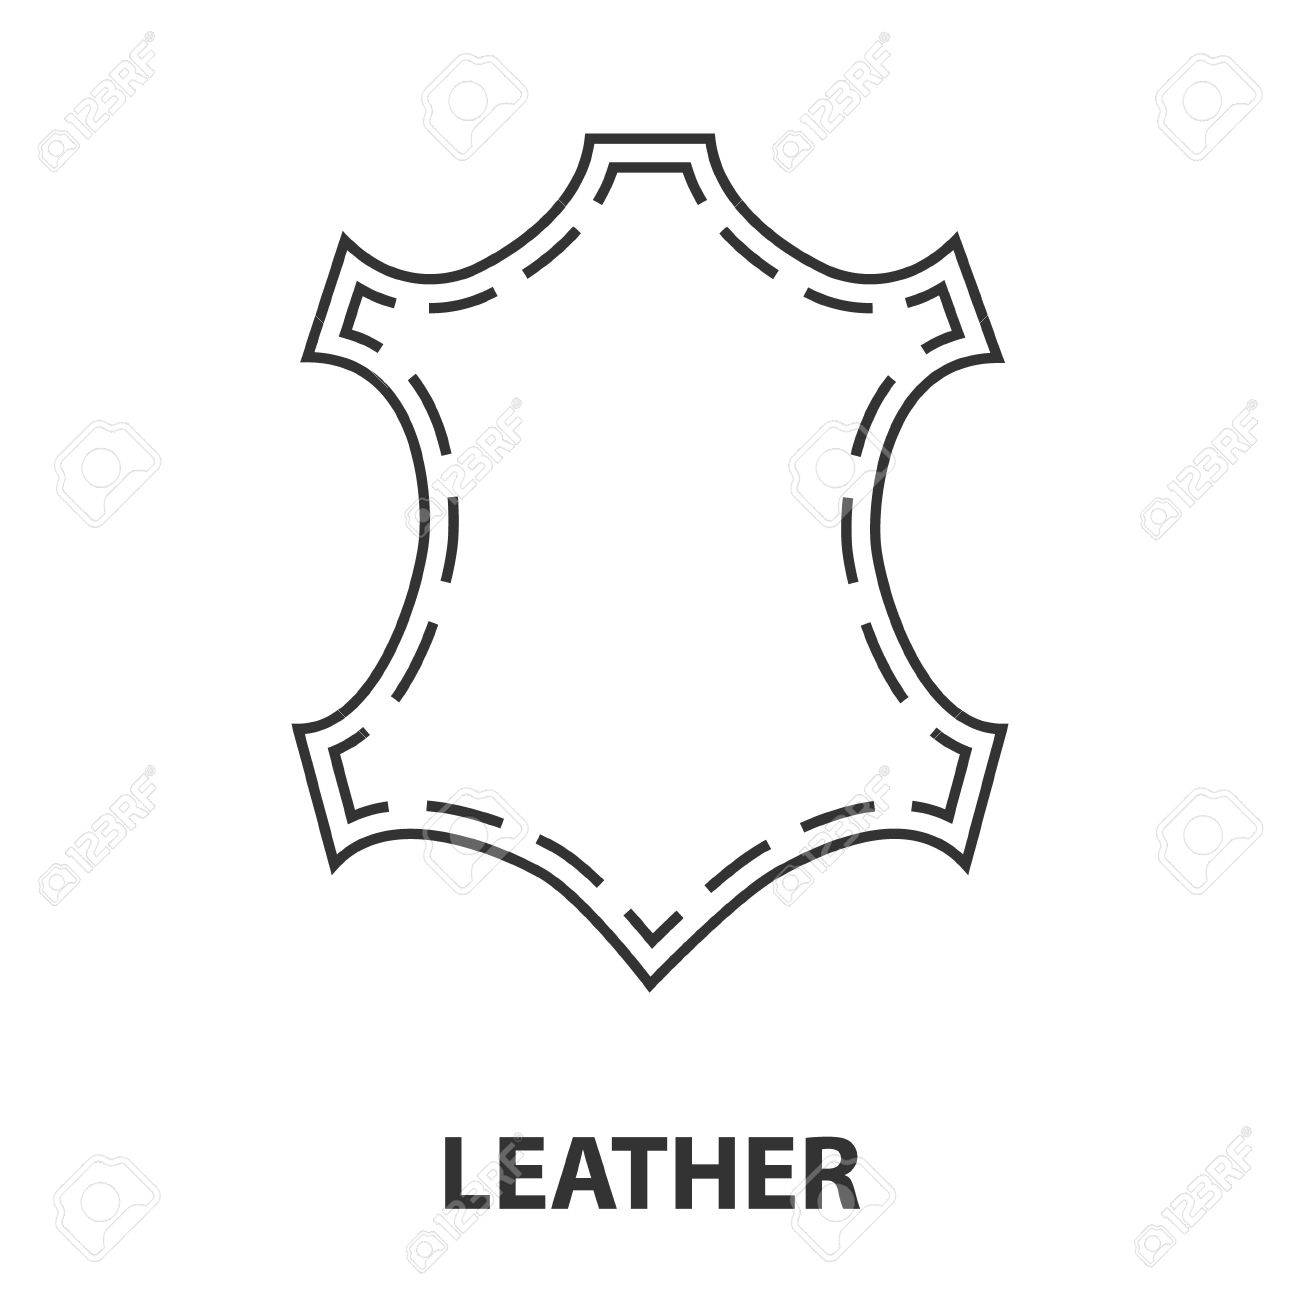 Leather icon or logo line art style. Vector Illustration..